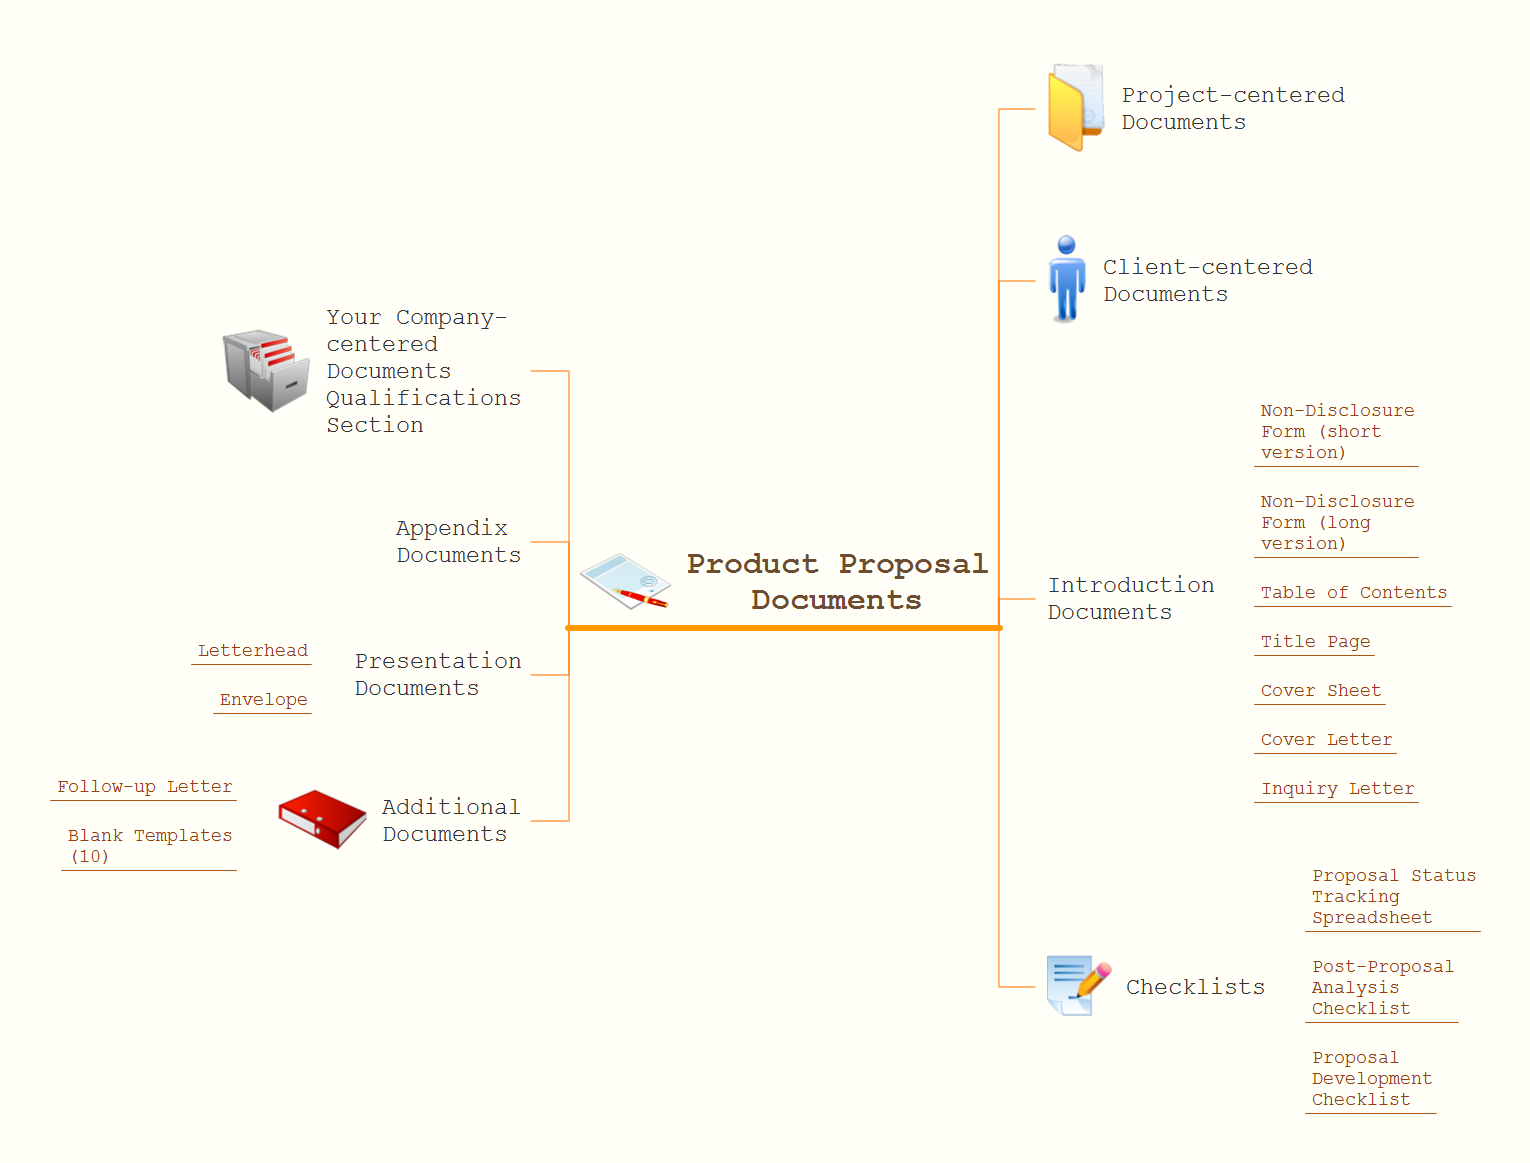 Mindmap presentation - Product proposal documents expanded